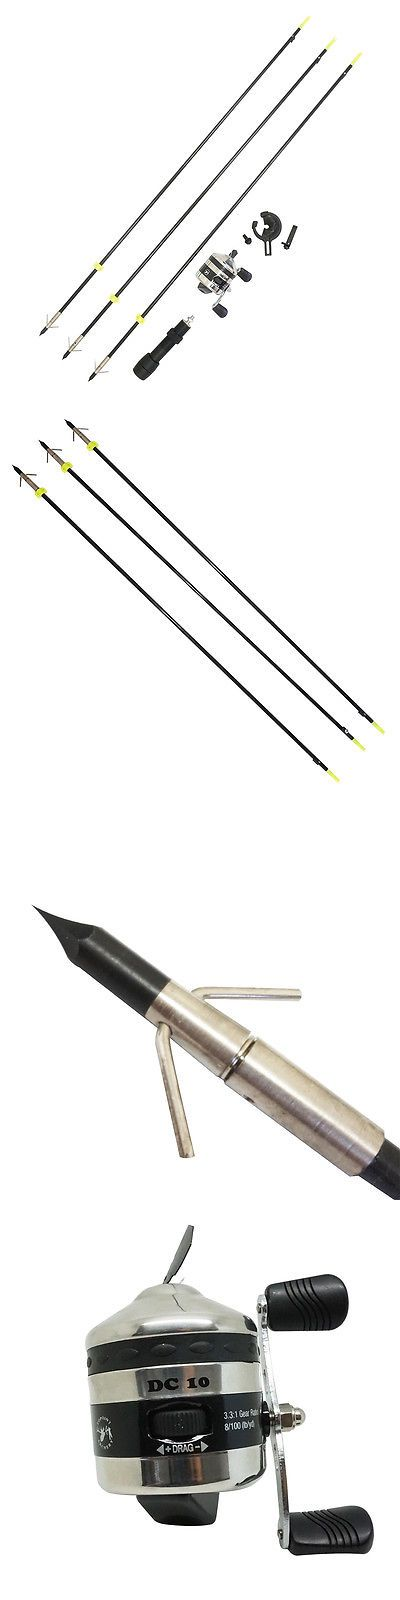 Other Archery 1291: Safari Choice Bowfishing Combo - Reel, Arrow Rest, Black Reel Seat, Arrows BUY IT NOW ONLY: $89.98